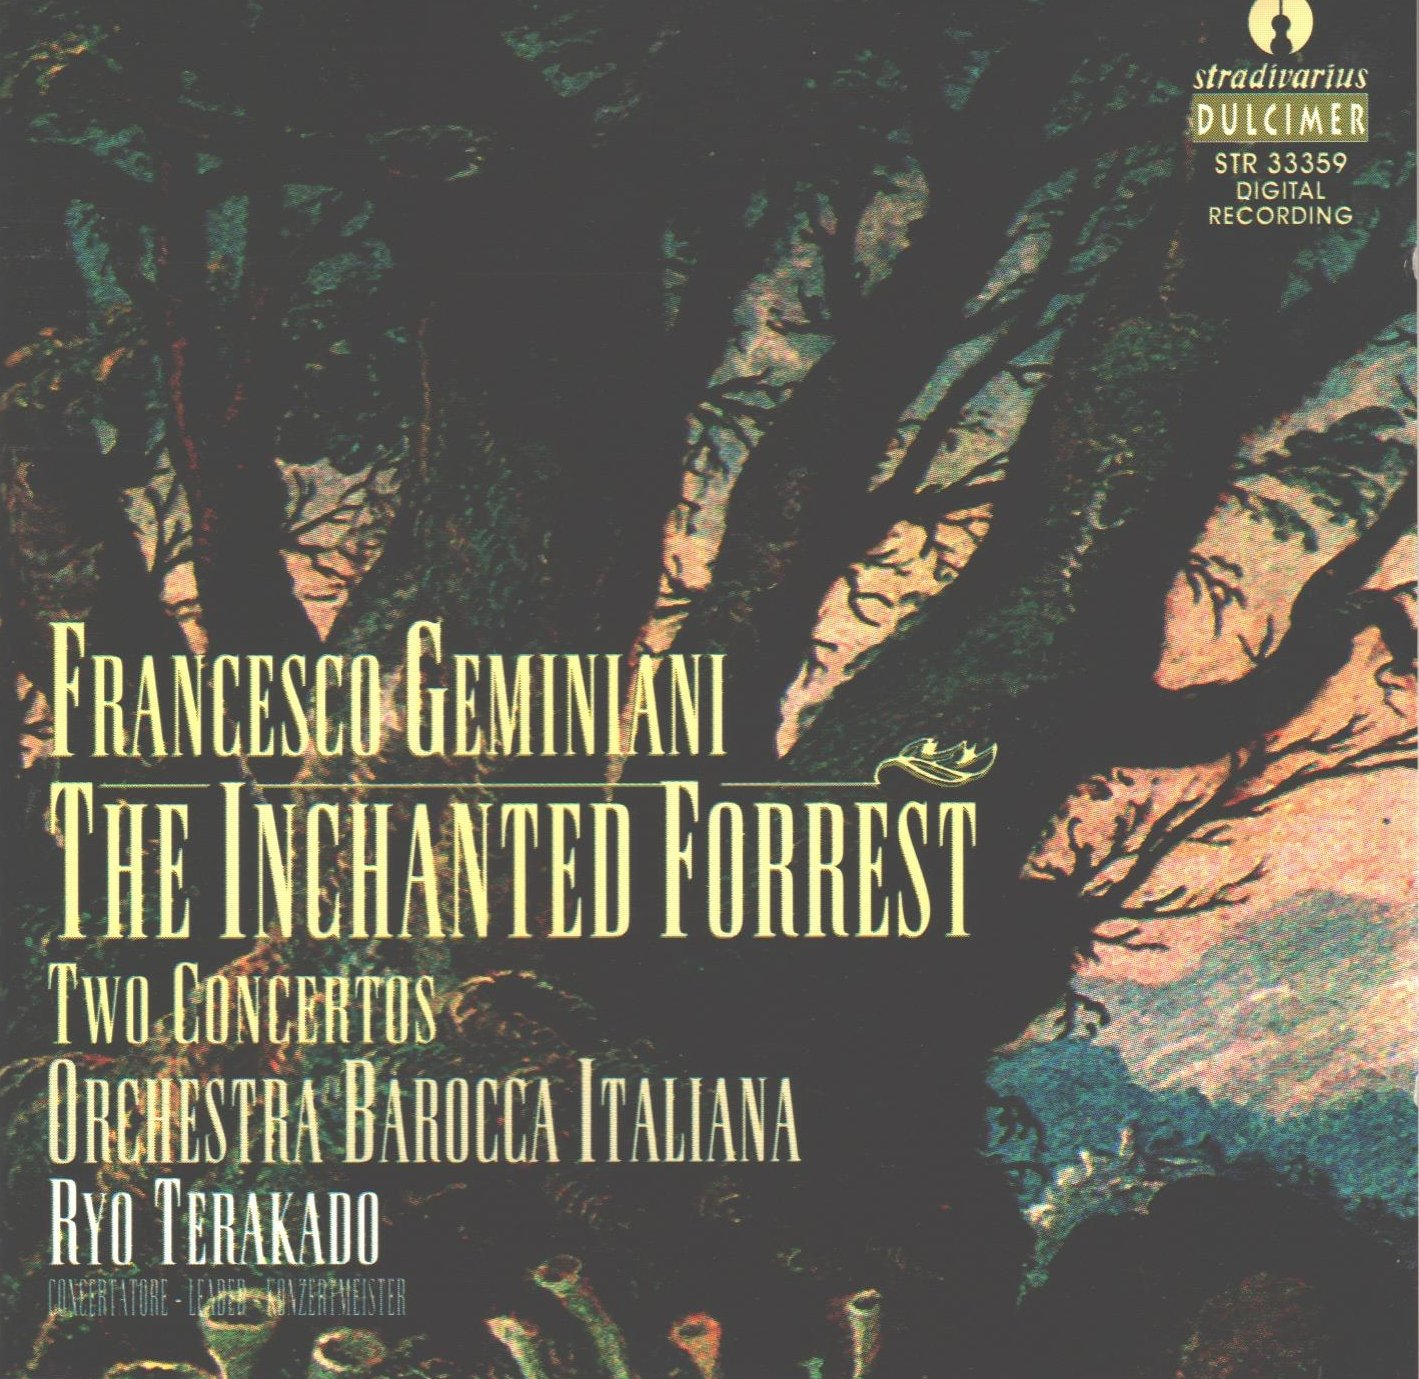 Geminiani: The Inchanted Forrest; Two Concertos /Orchestra Barocca Italiana · Terakado